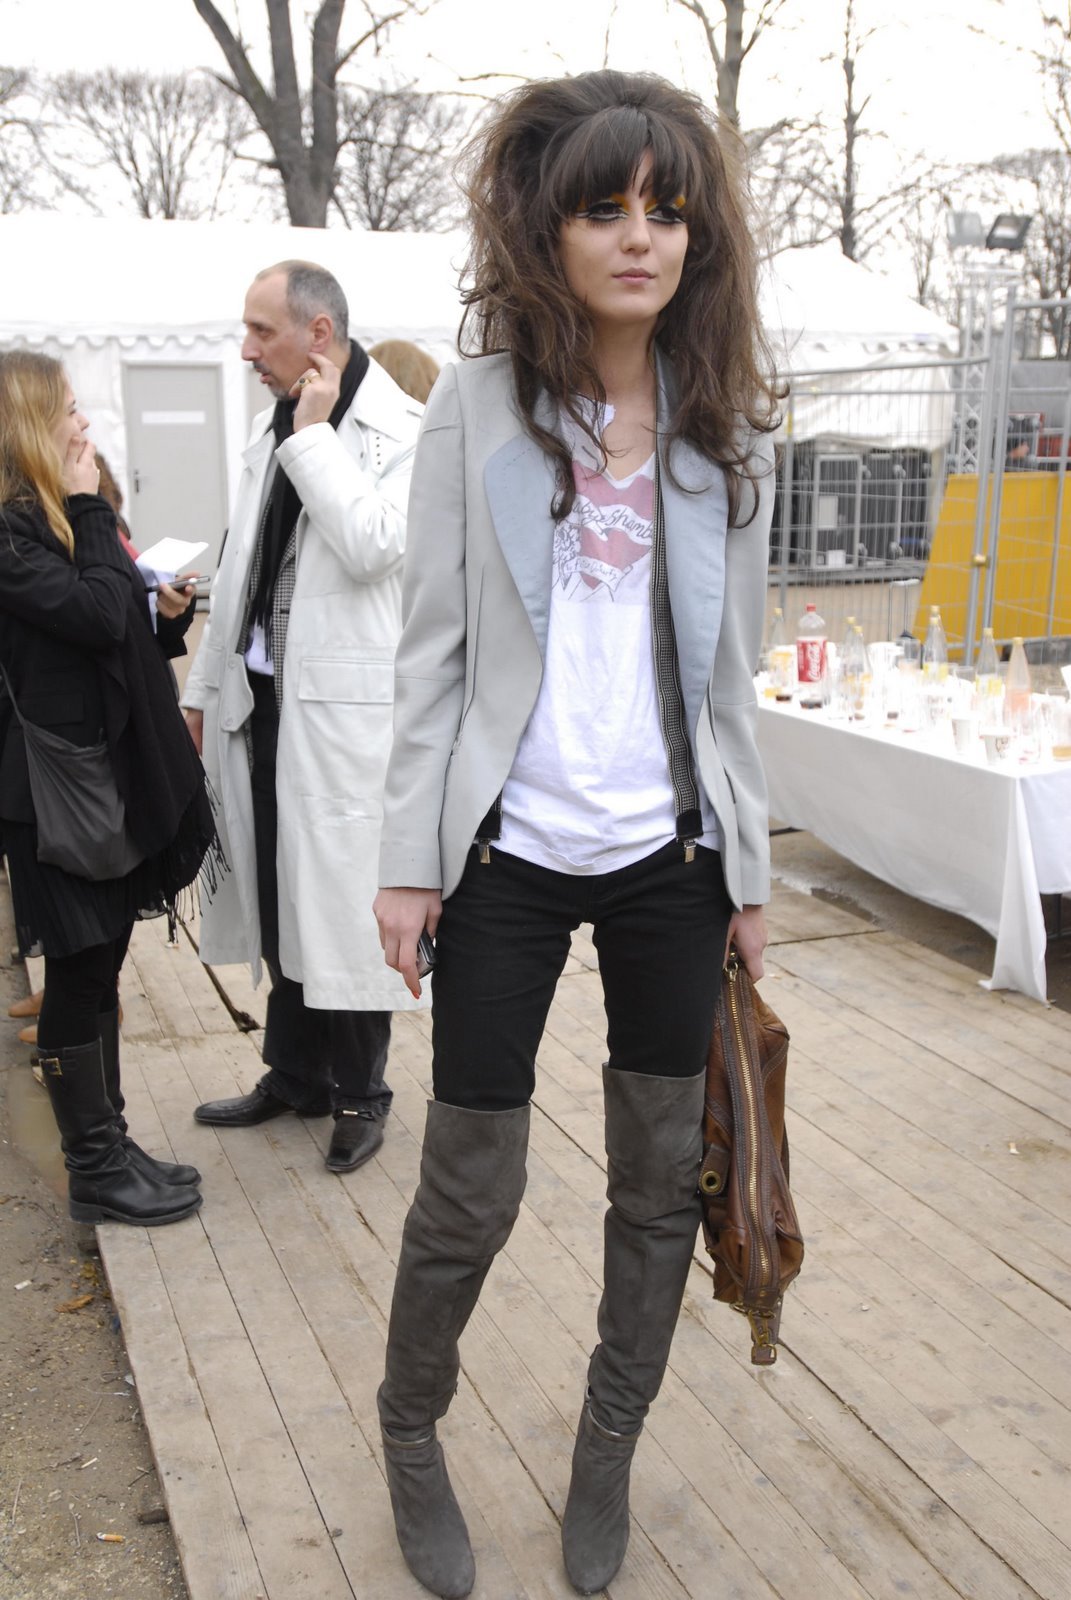 That Hair, Those Boots